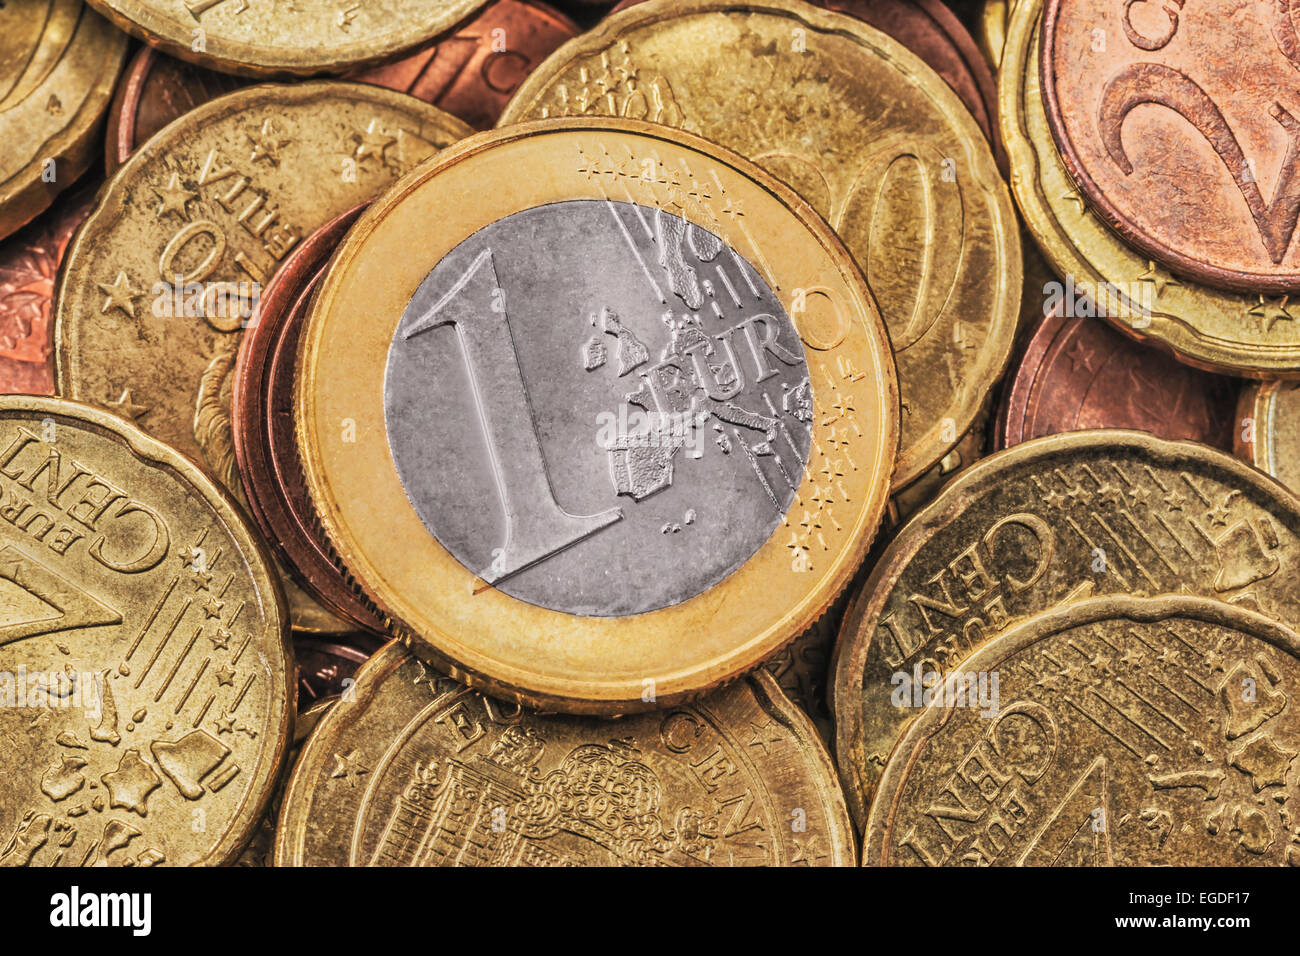 Many Euro coins, on top is a 1 Euro coin, front side - Stock Image